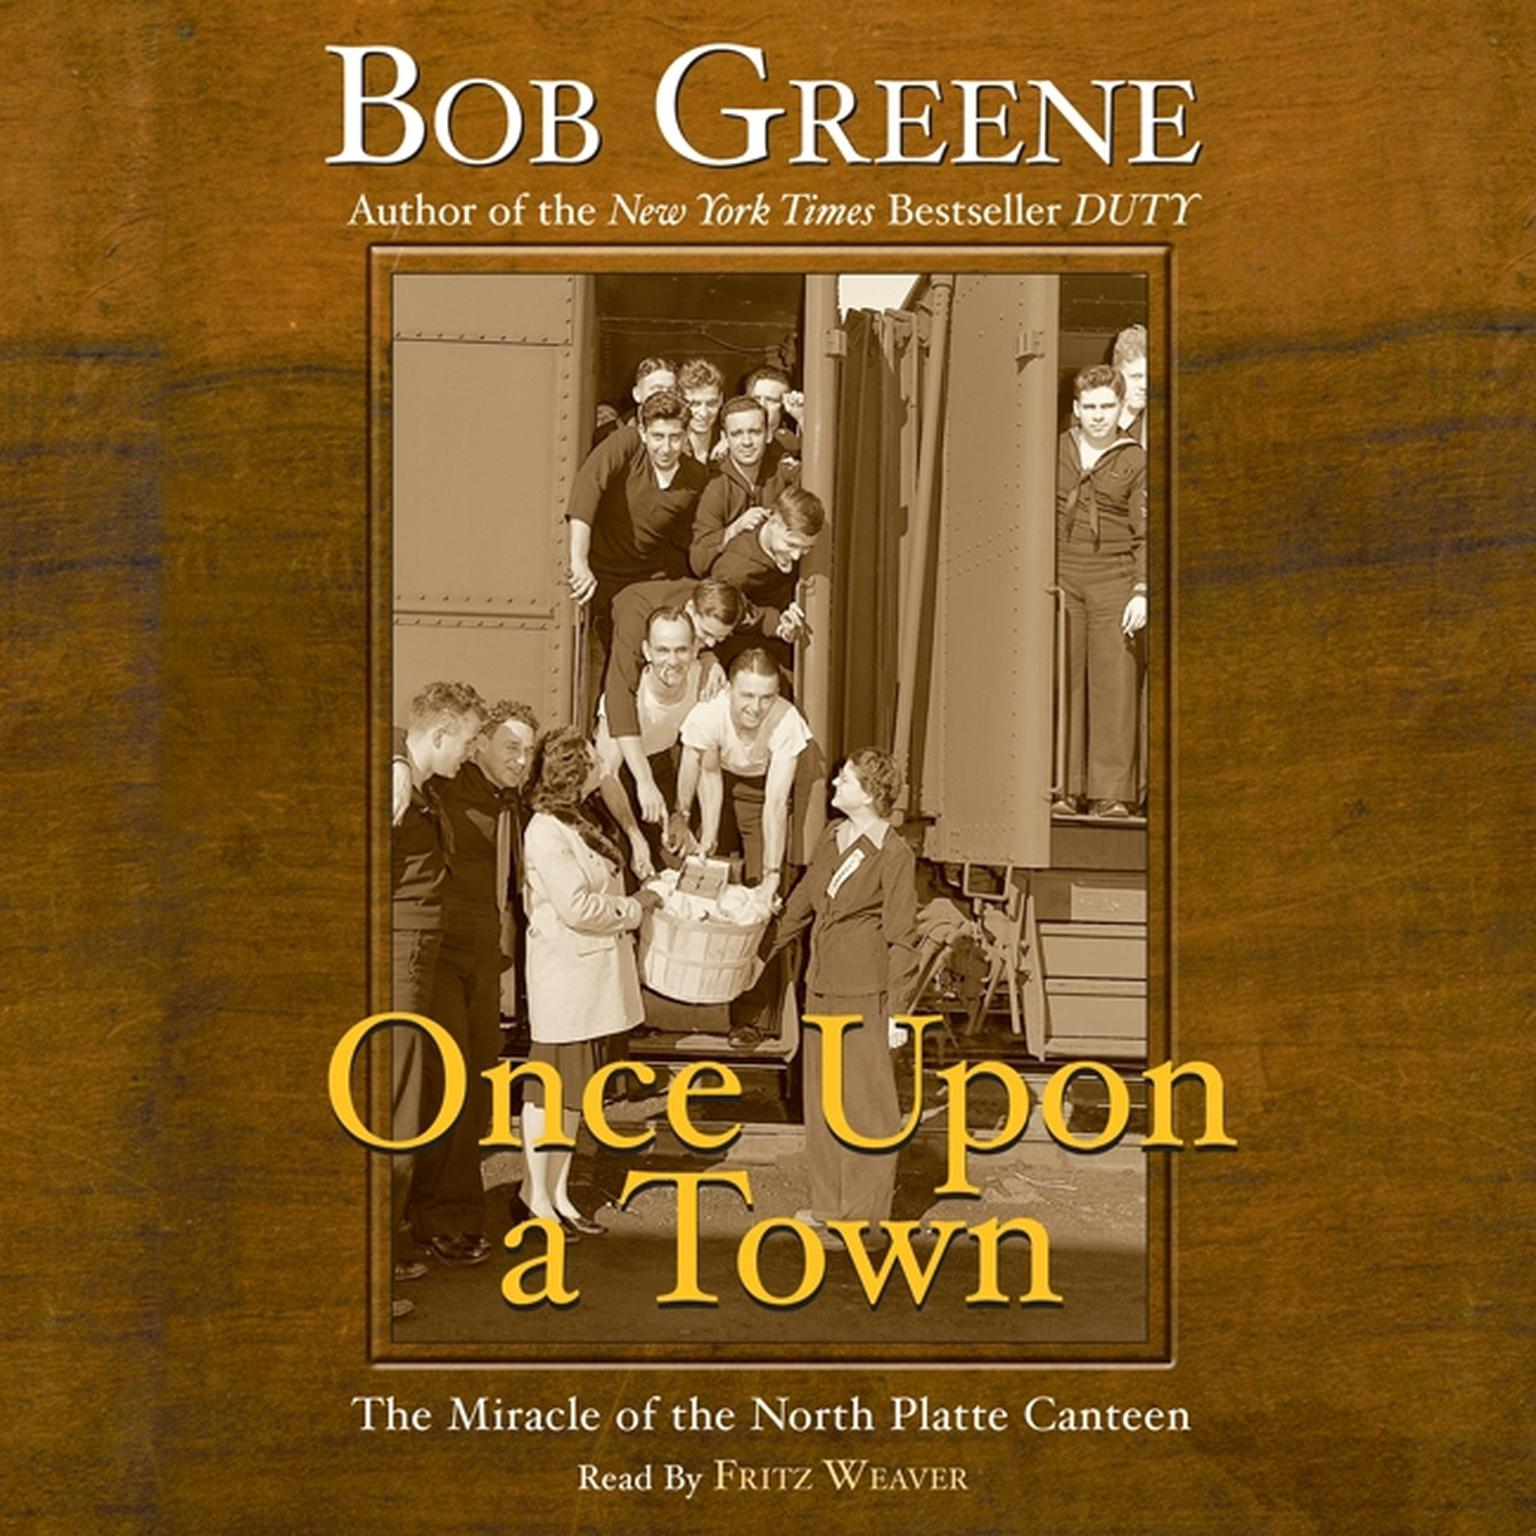 Printable Once Upon a Town: The Miracle of the North Platte Canteen Audiobook Cover Art